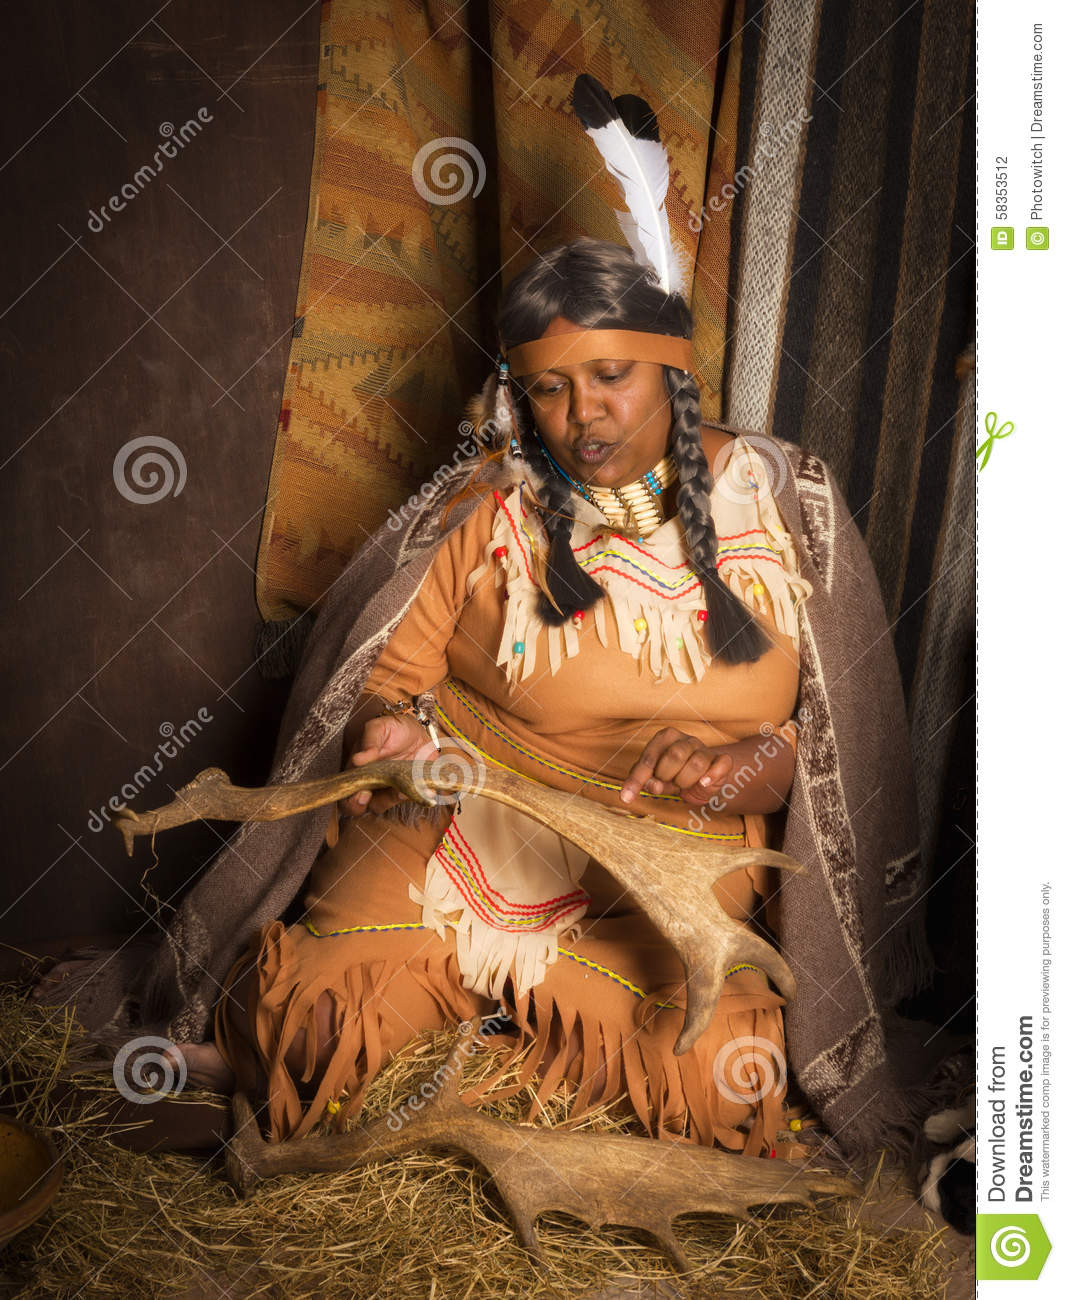 Storytelling Traditions of Native Americans